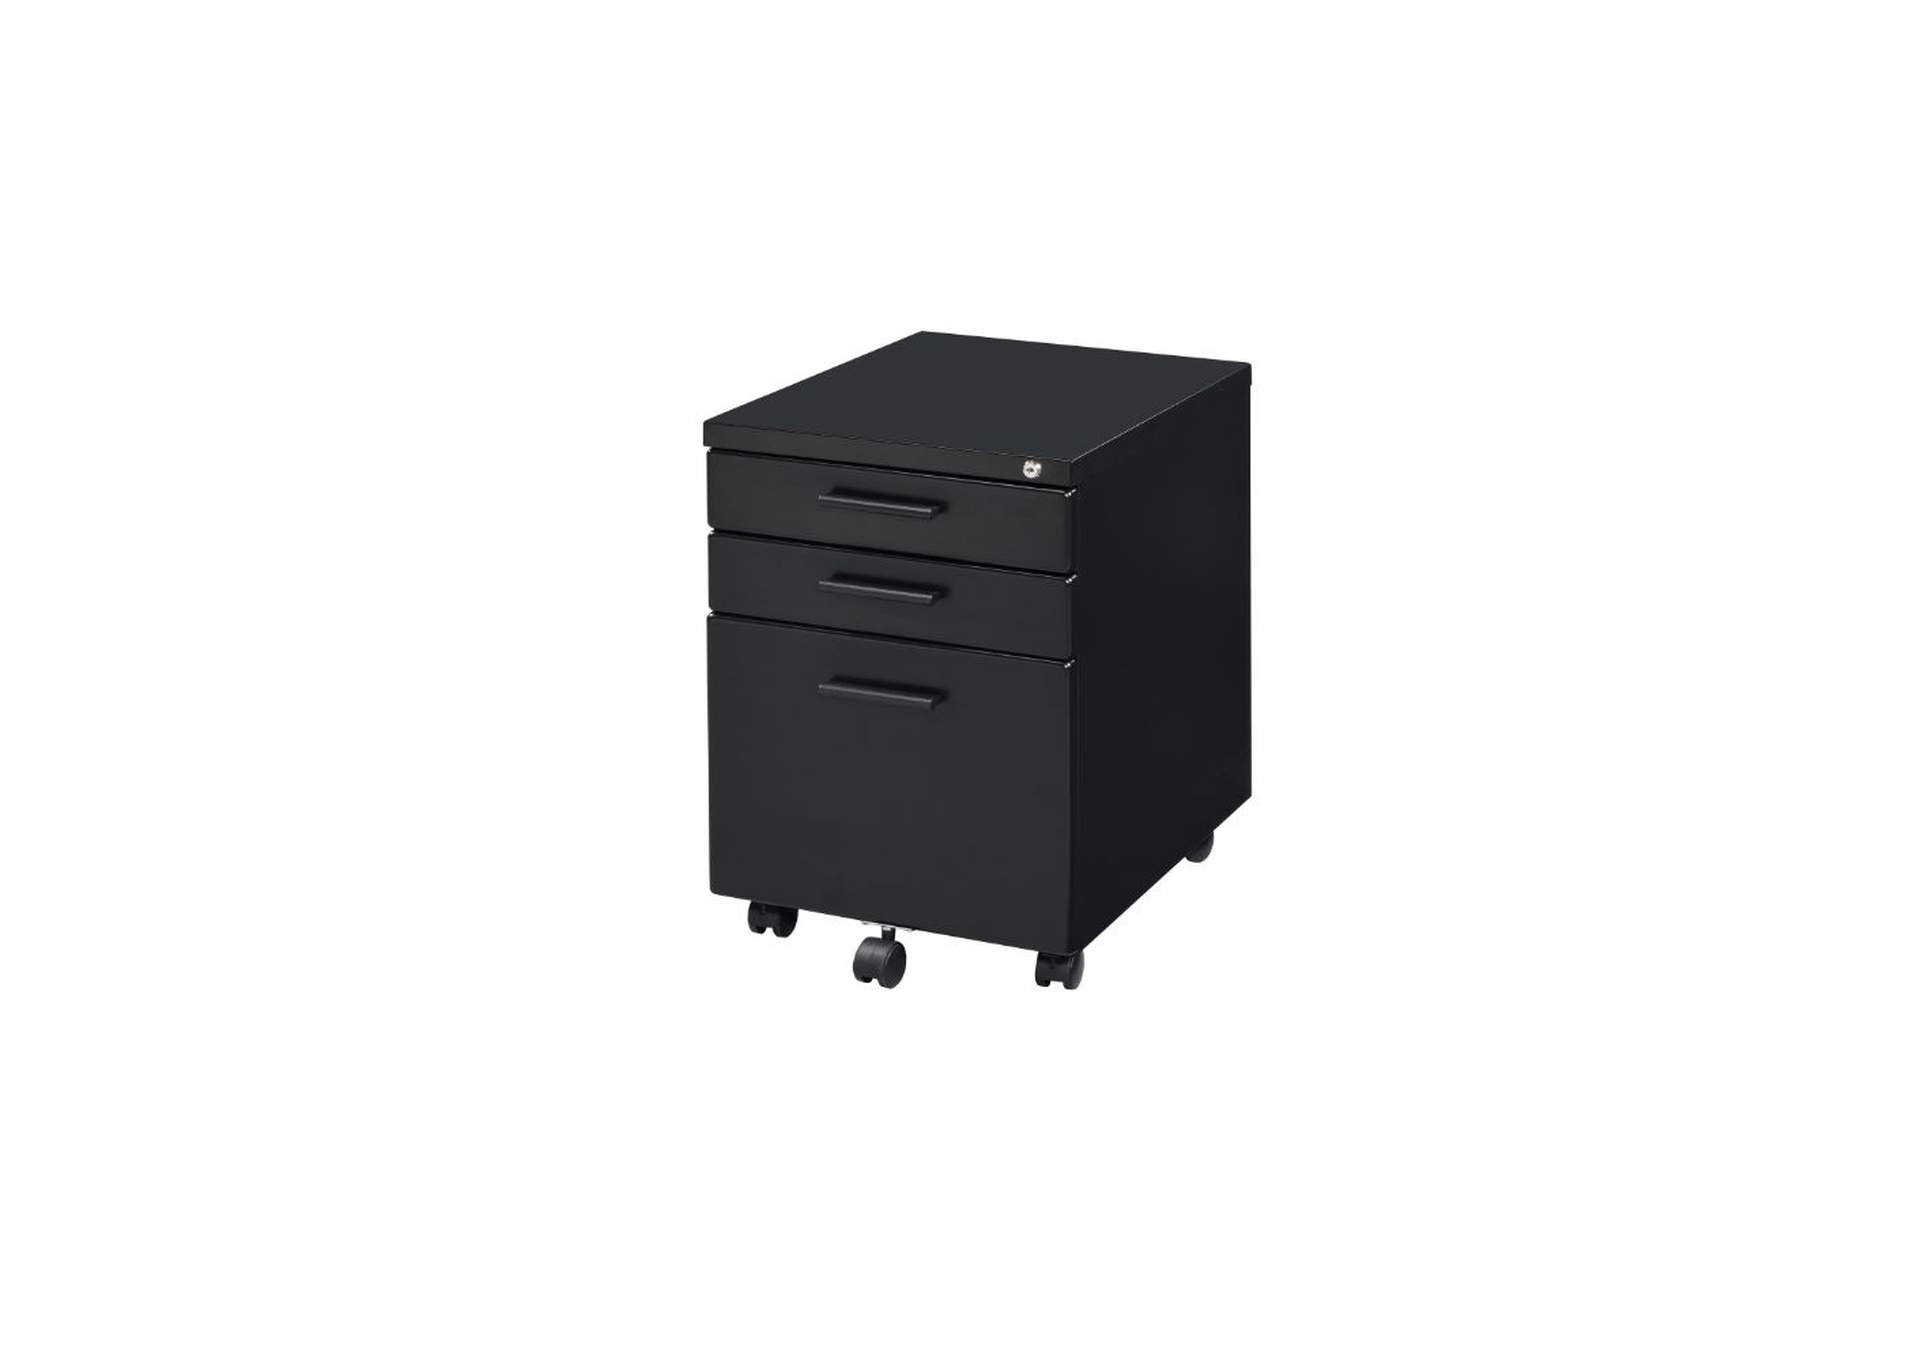 Peden Black File Cabinet,Acme